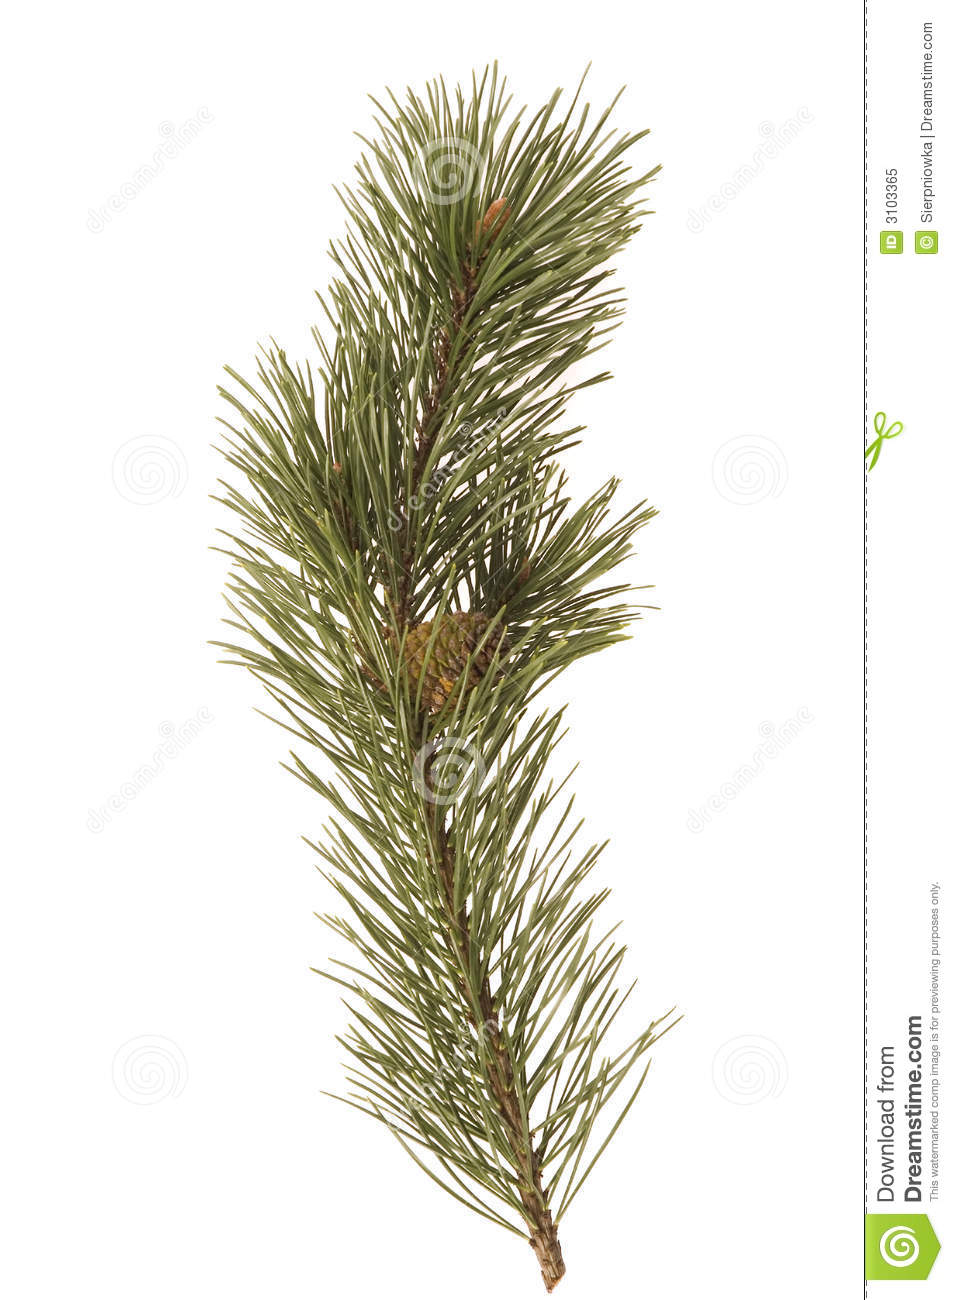 Evergreen Branch Royalty Free Stock Photo - Image: 3103365 Evergreen Branch